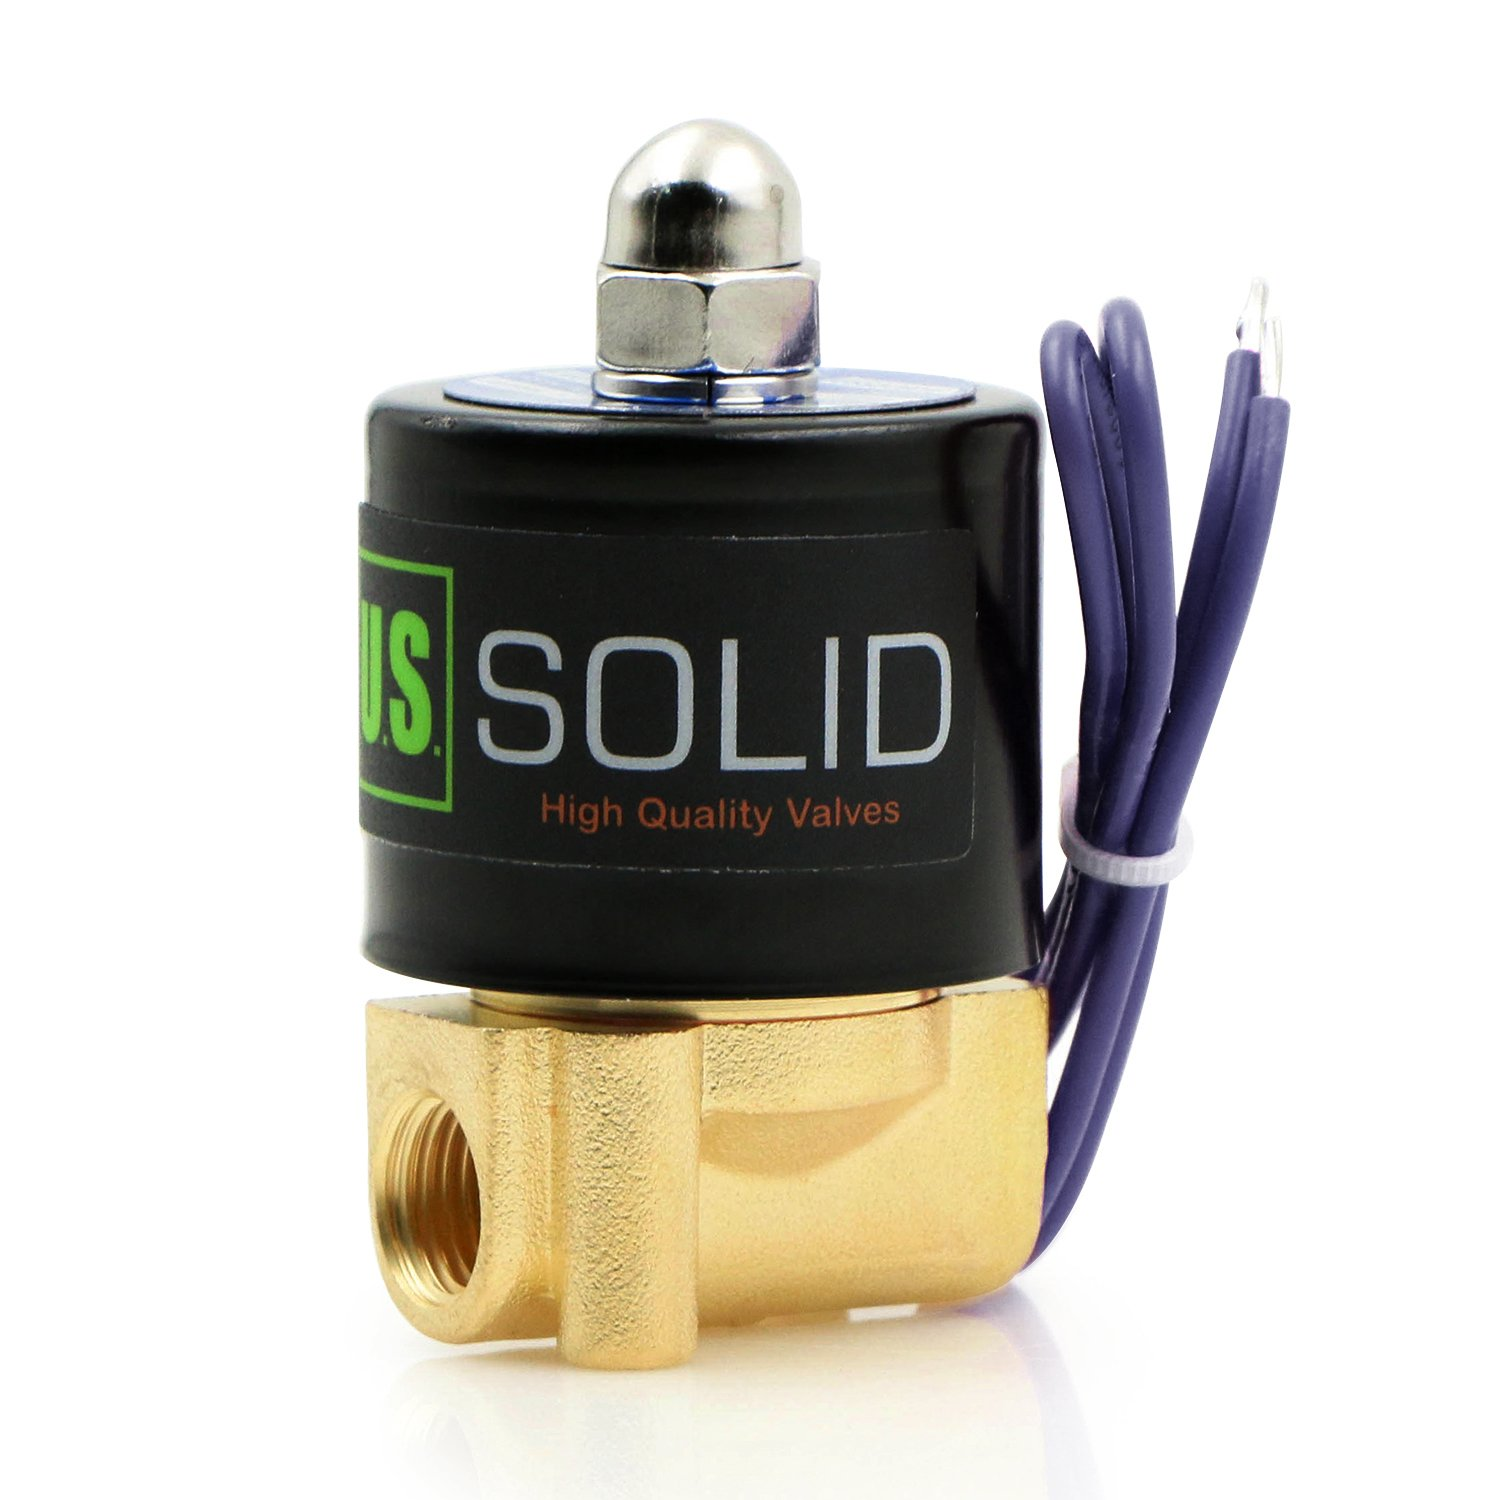 """1/4"""" NPT Brass Electric Solenoid Valve 12VDC Normally Closed VITON (Standard USA Pipe Thread). Solid Brass, Direct Acting, Viton Gasket Solenoid Valve by U.S. Solid."""